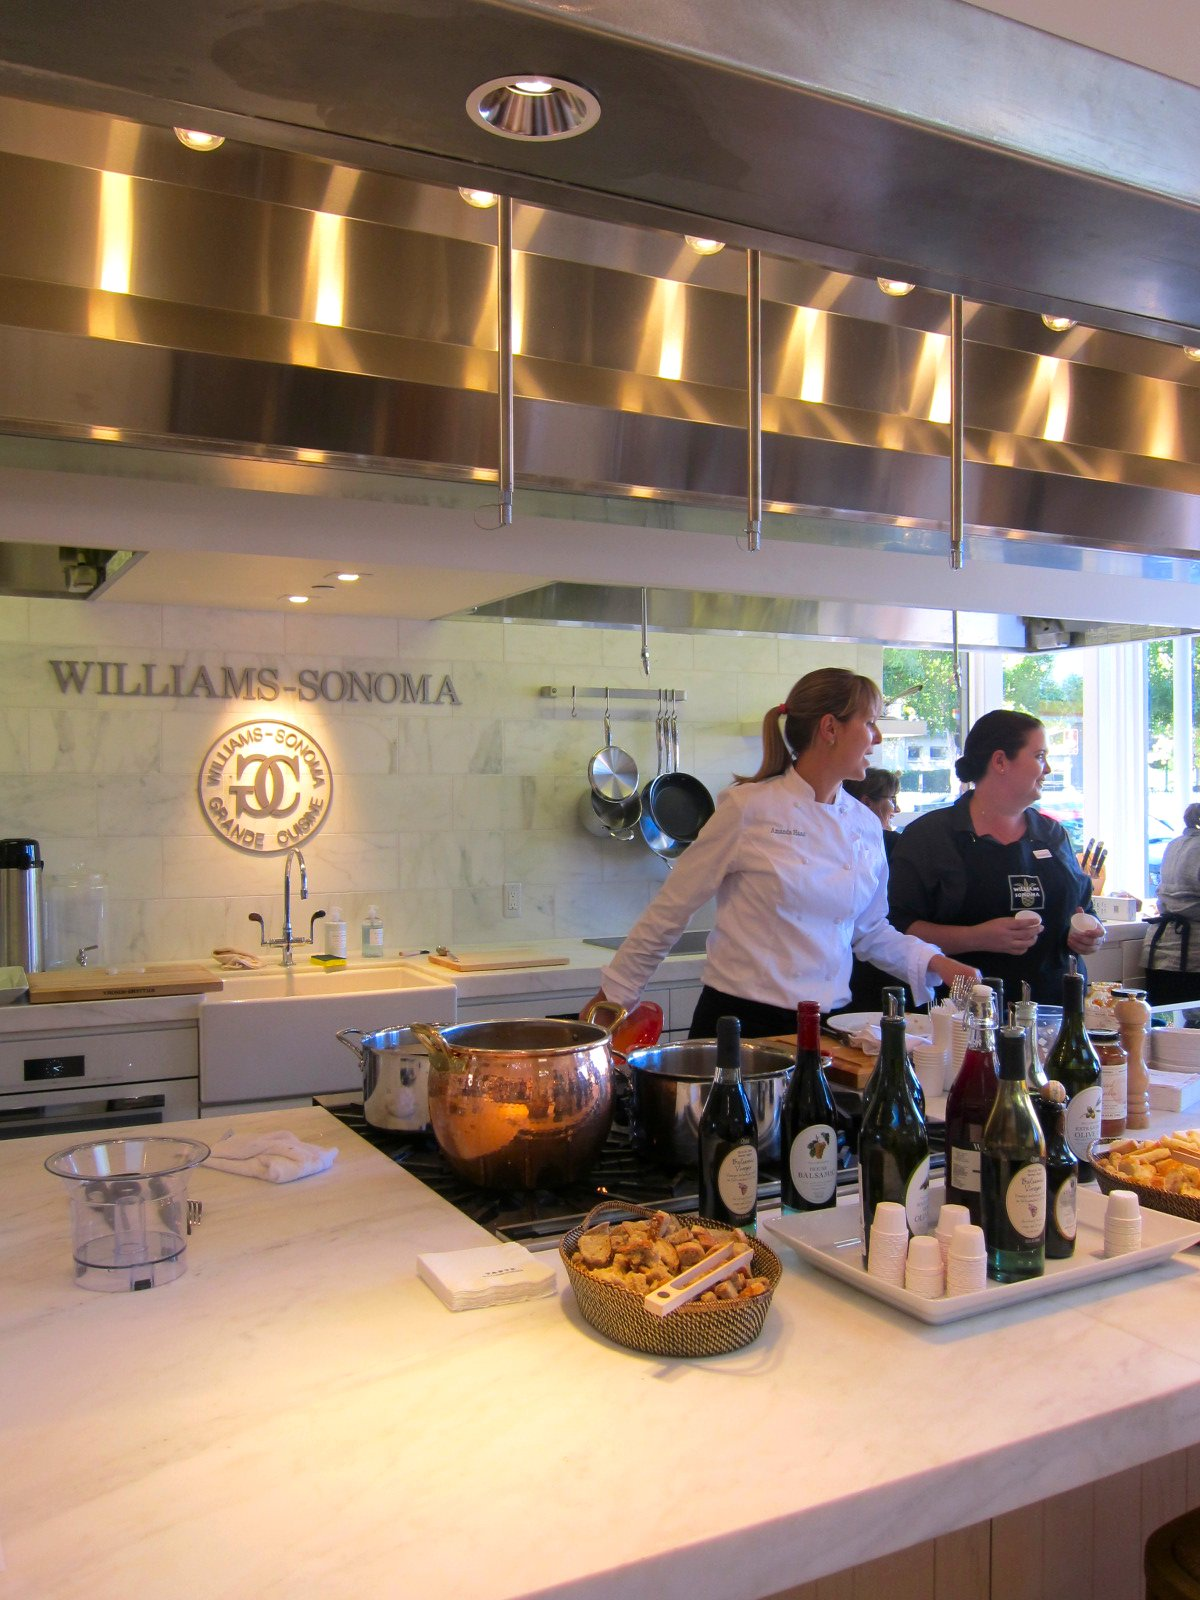 williams sonoma Charles edward chuck williams (october 2, 1915 - december 5, 2015) was the american founder of the williams-sonoma company and author and editor of more than 100 books on the subject of cooking.